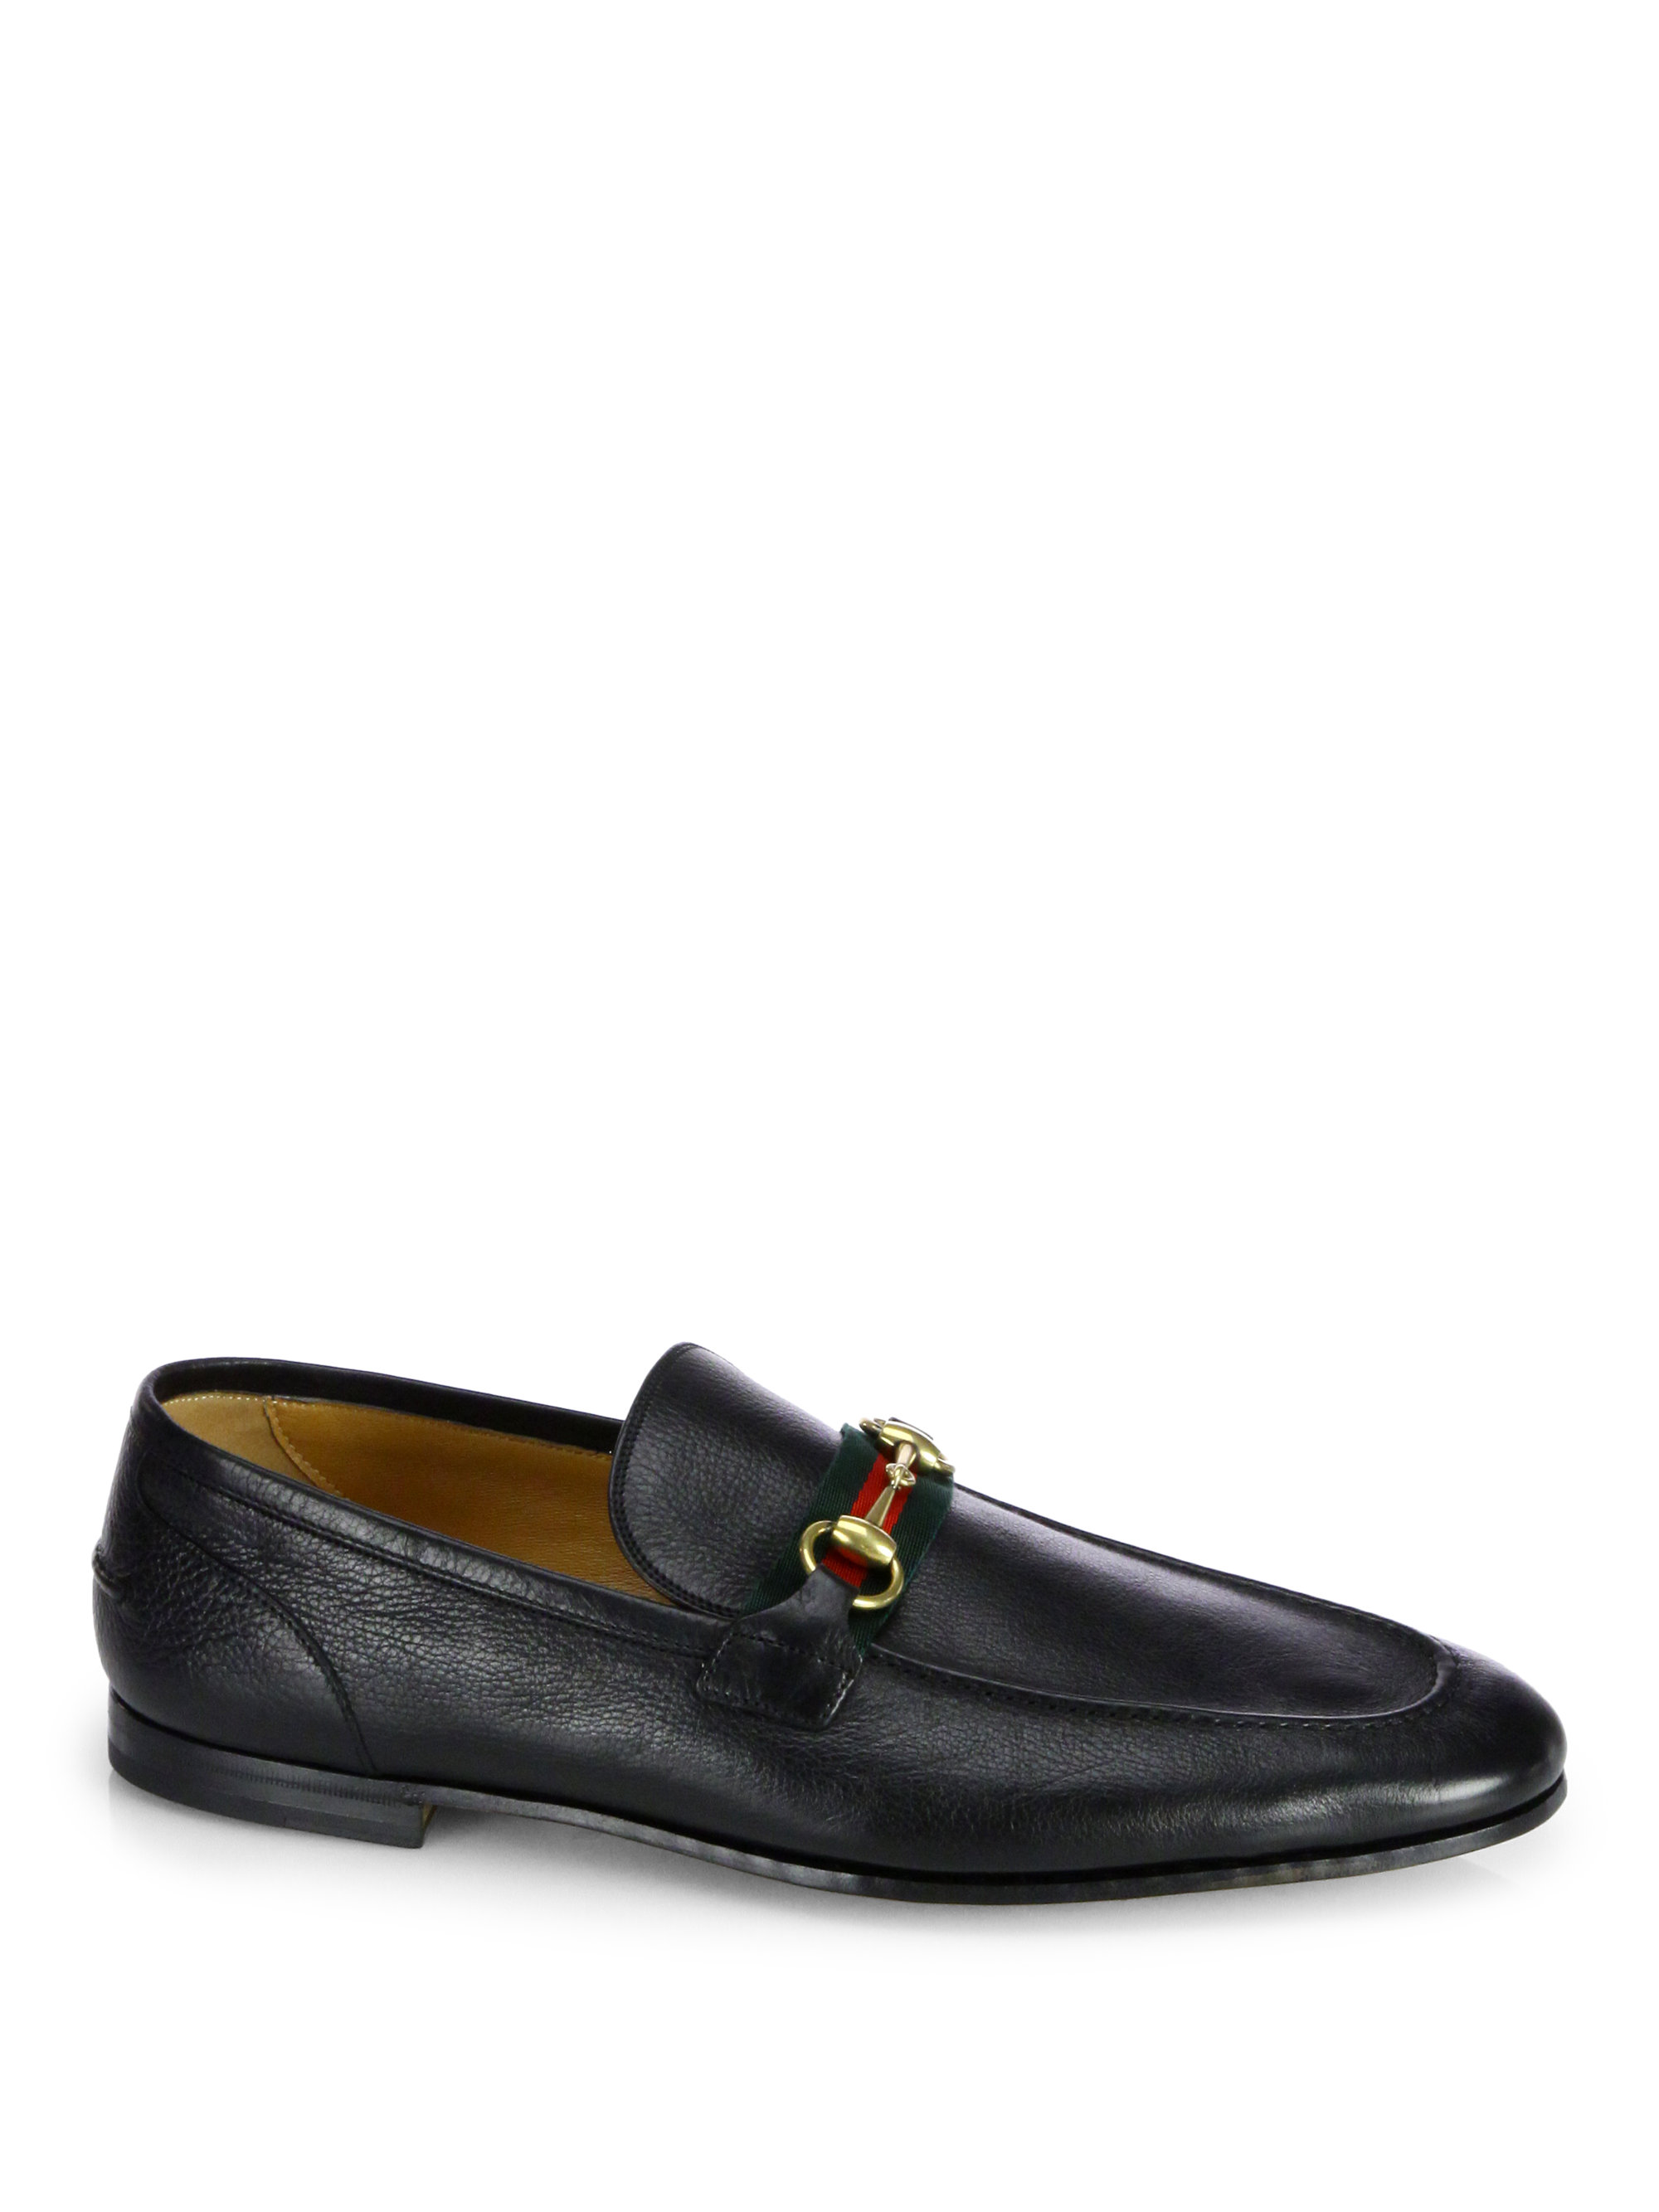 gucci leather horsebit loafers in black for men lyst. Black Bedroom Furniture Sets. Home Design Ideas